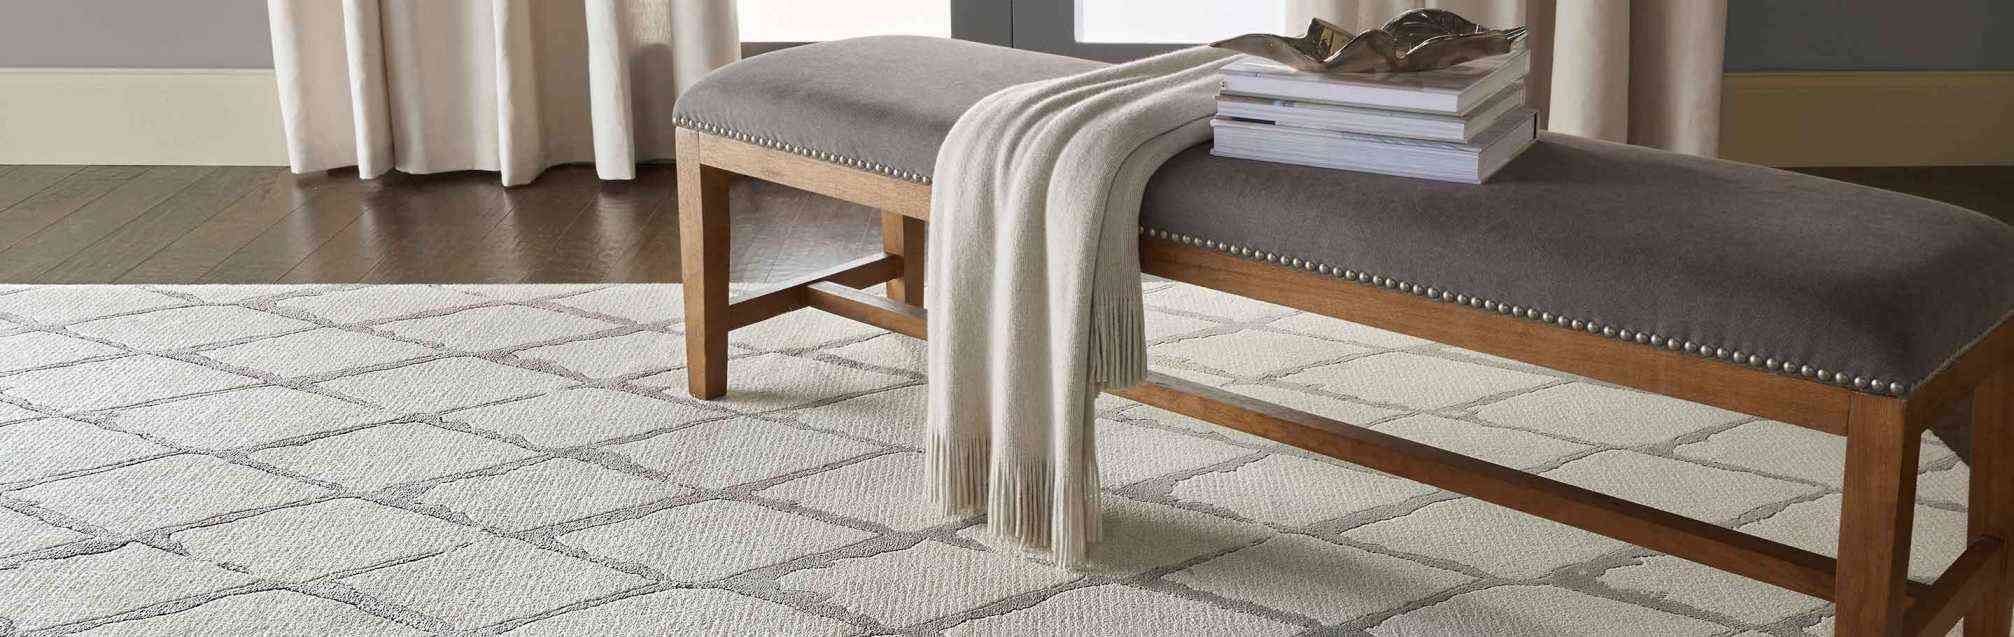 Dominion Rug Home High Quality Flooring In Toronto On